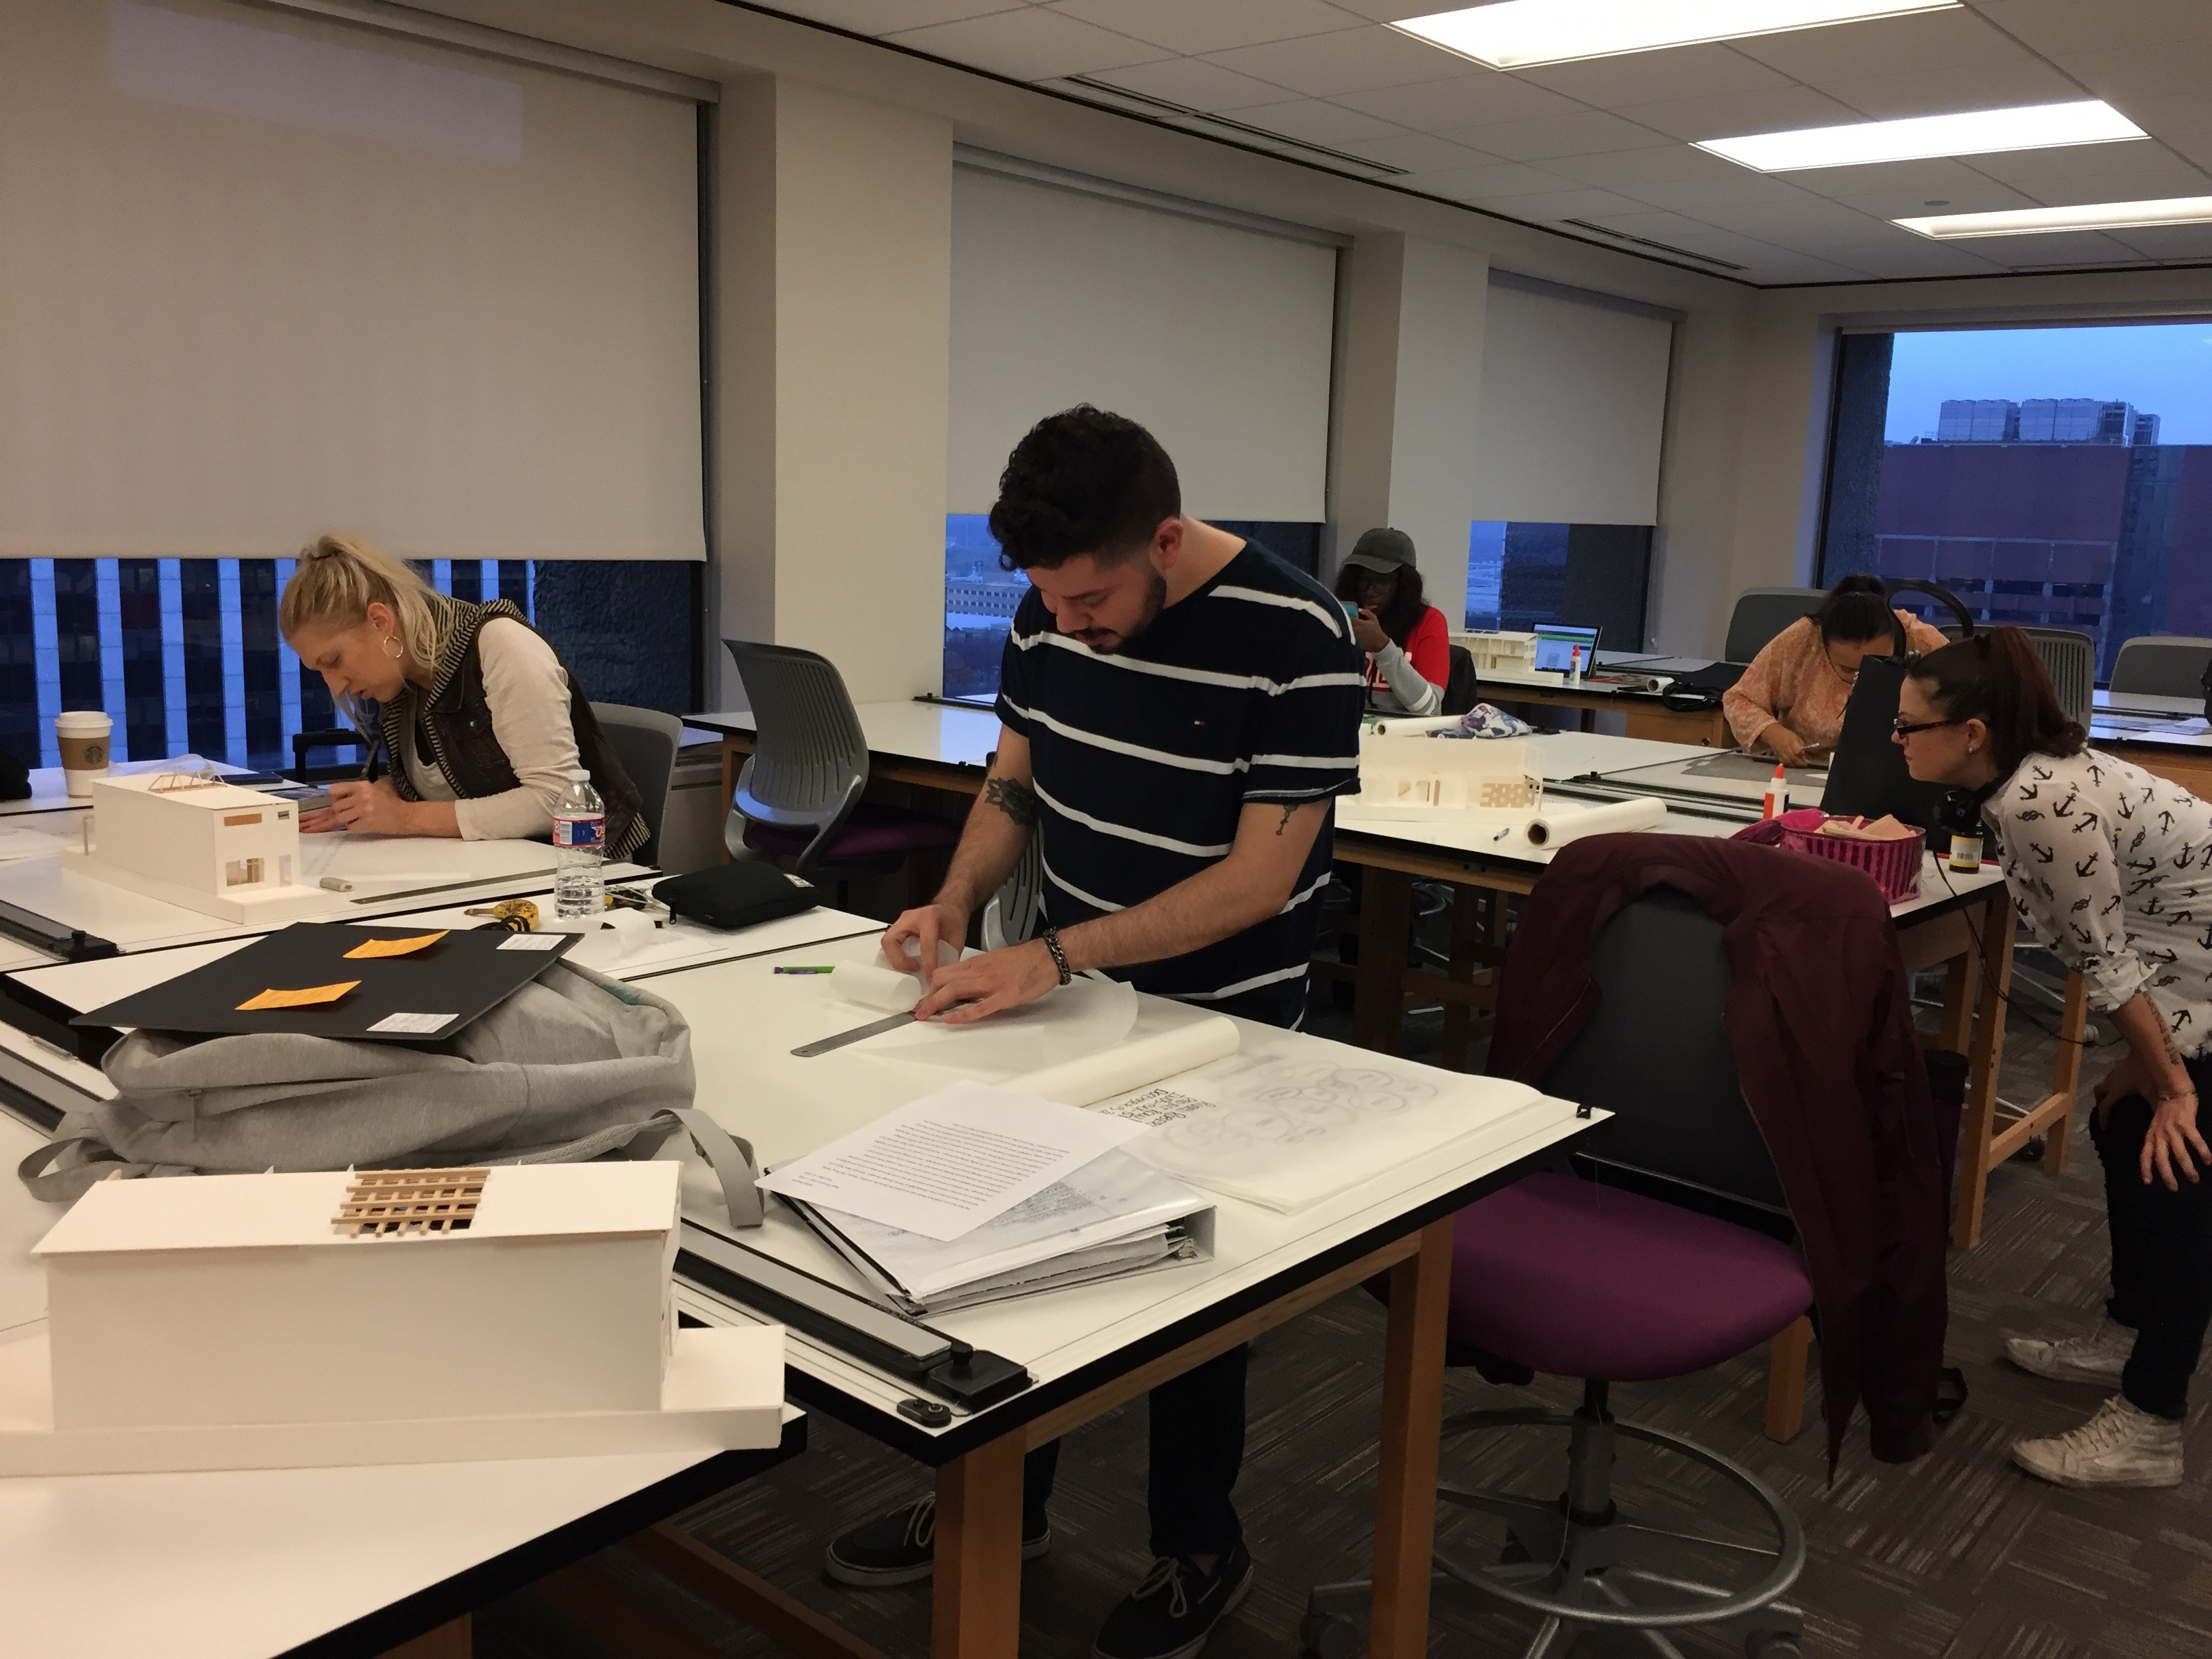 DCCCD students in a classroom, studying interior design at El Centro College.